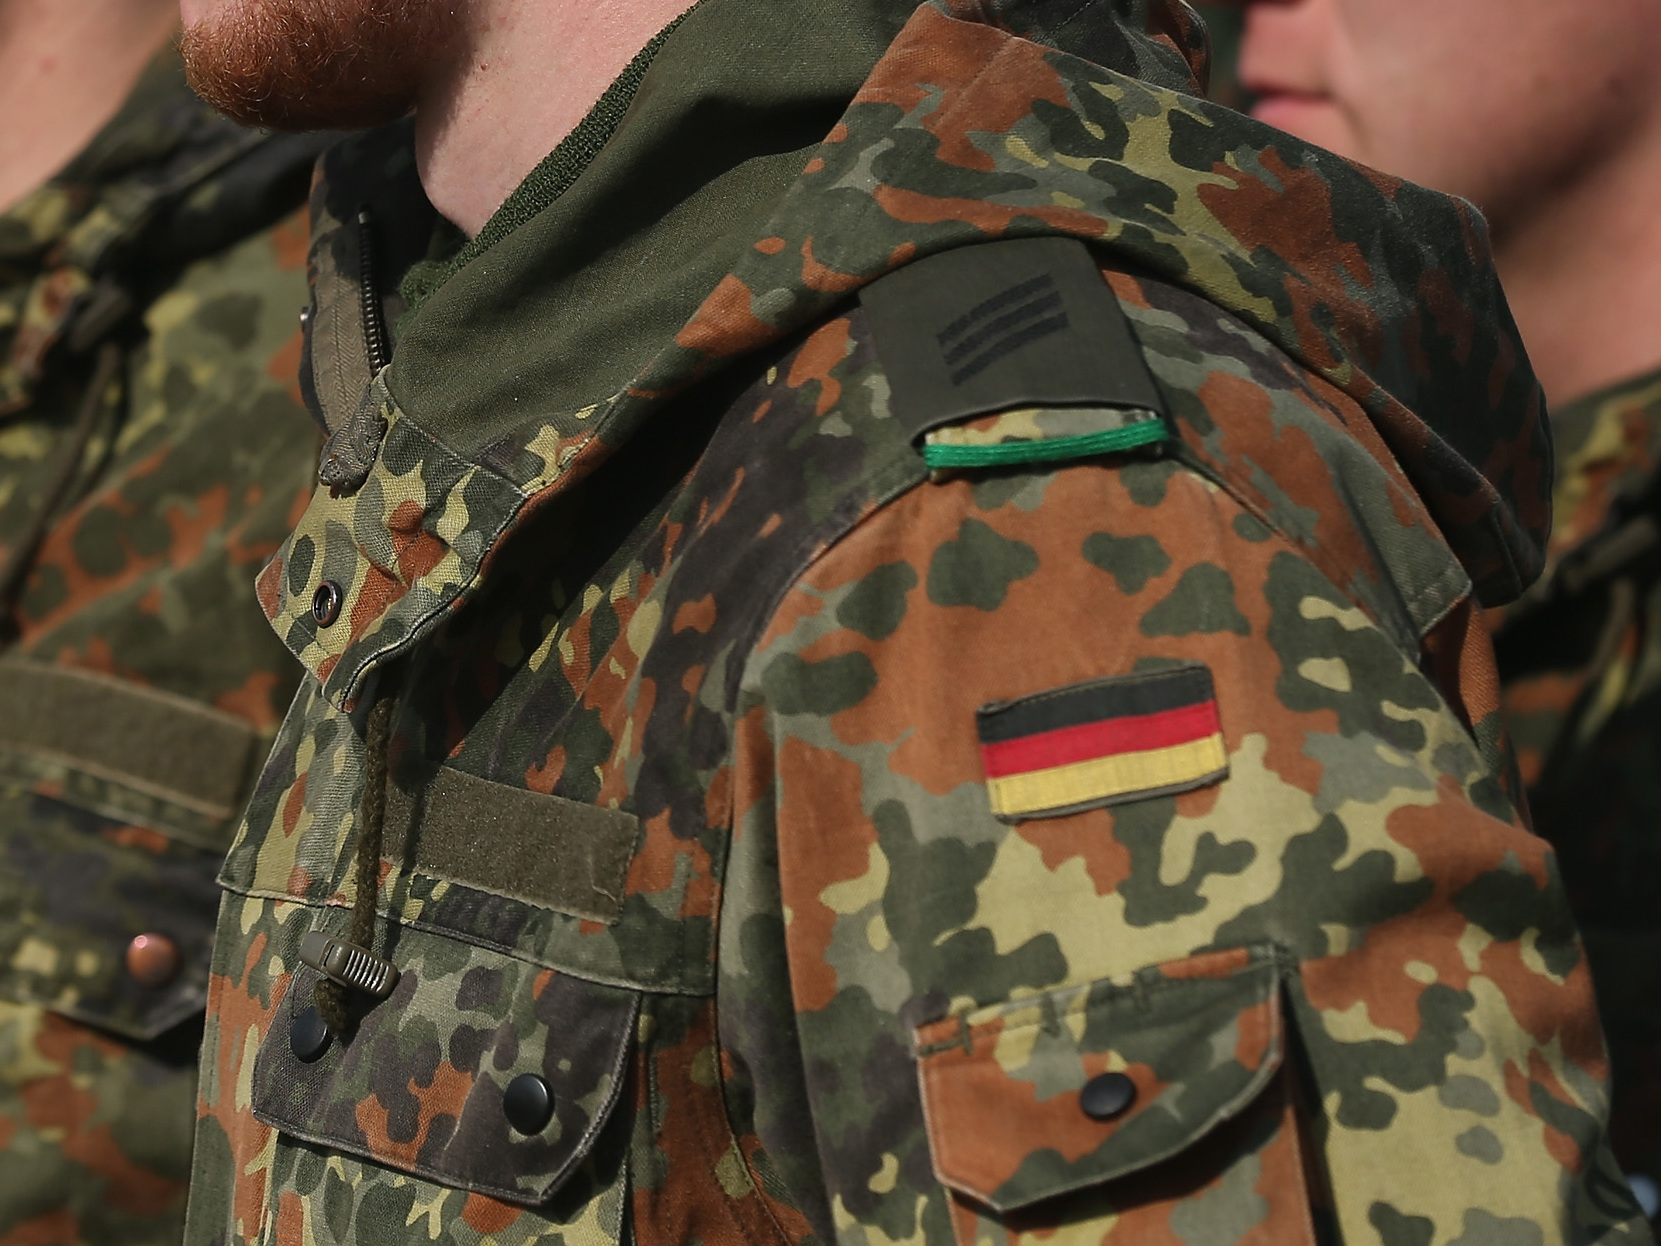 German Special Forces Officer To Be Suspended Over Ties To Right-Wing Extremism